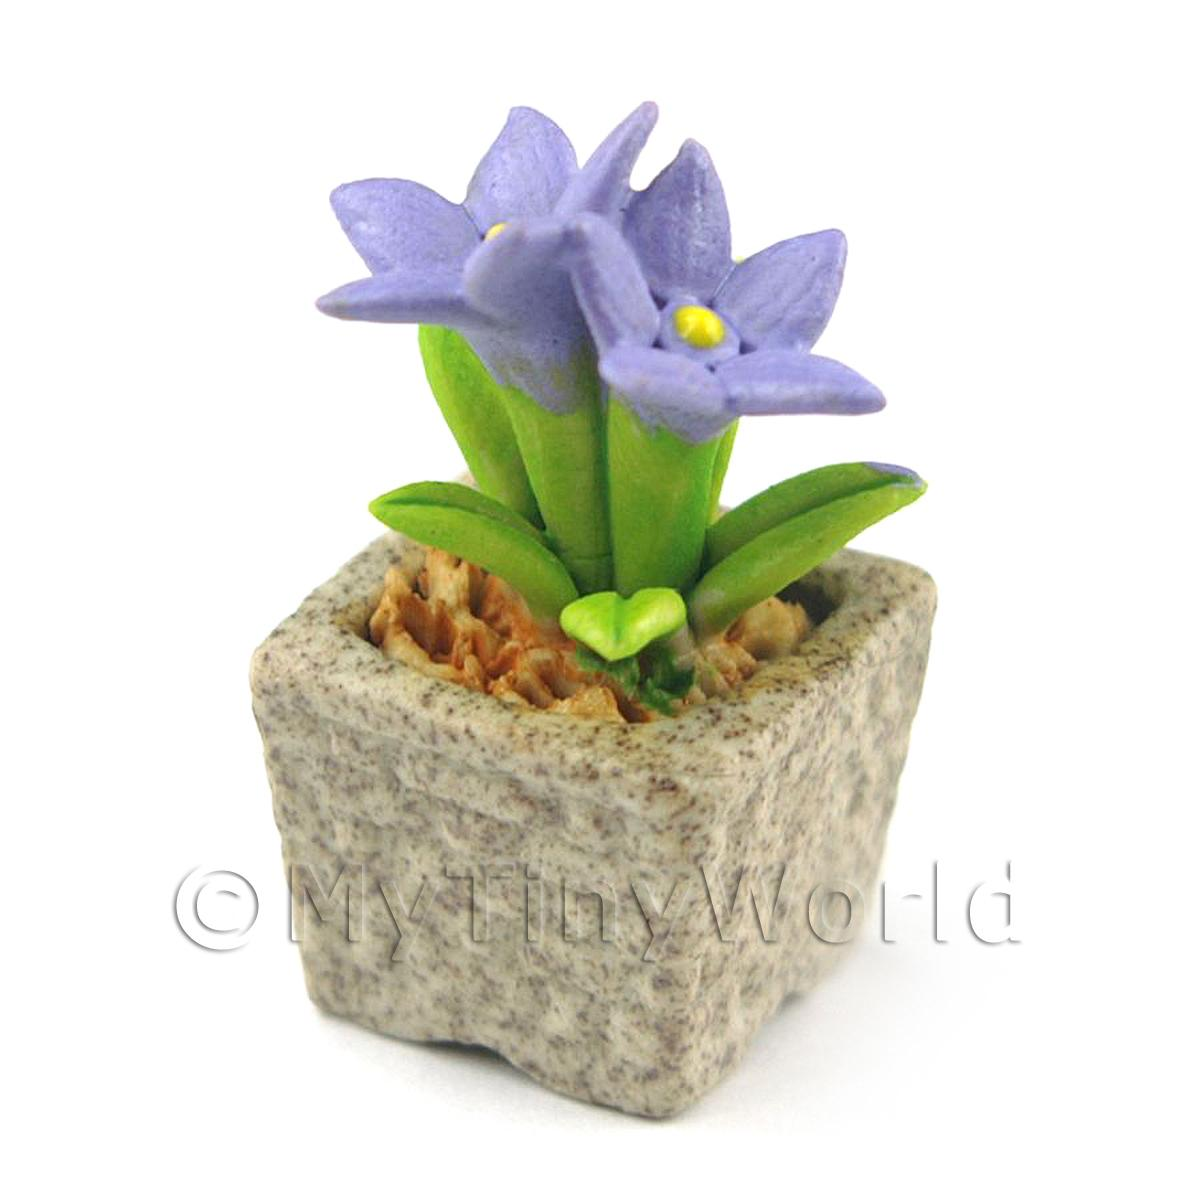 Miniature Handmade Violet Coloured Ceramic Flower (CFV9)